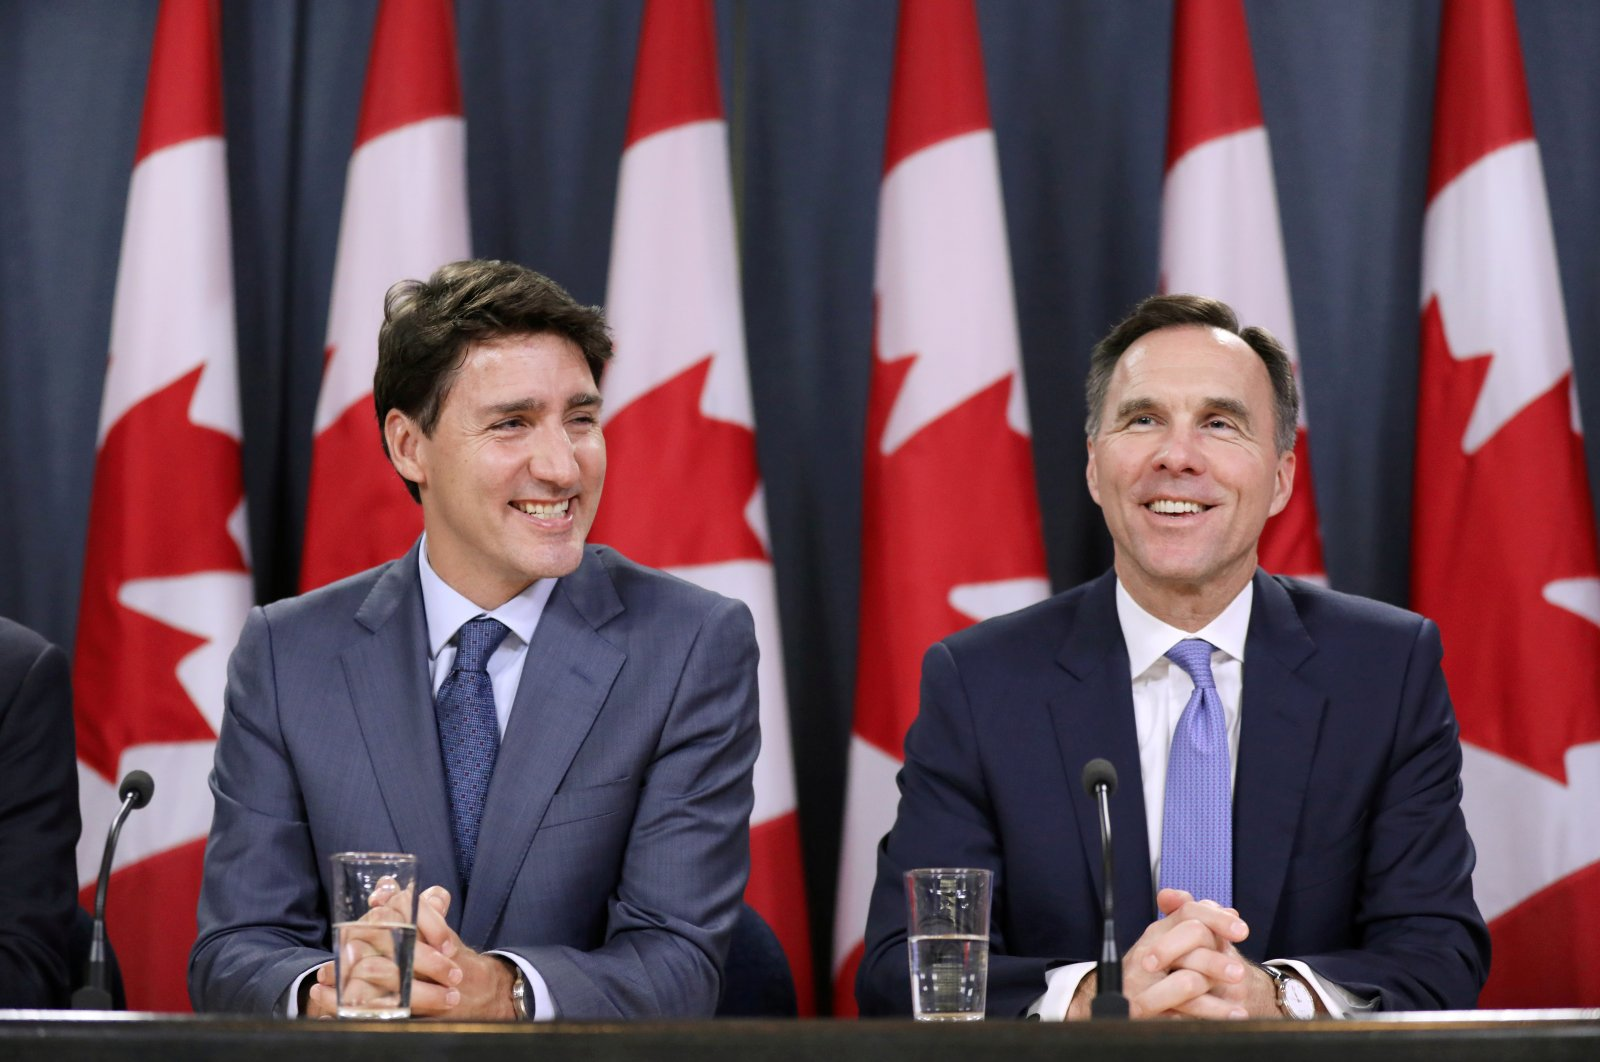 Canada's Prime Minister Justin Trudeau and Finance Minister Bill Morneau react during a news conference, Ottawa, Ontario, June 18, 2019. (REUTERS Photo)